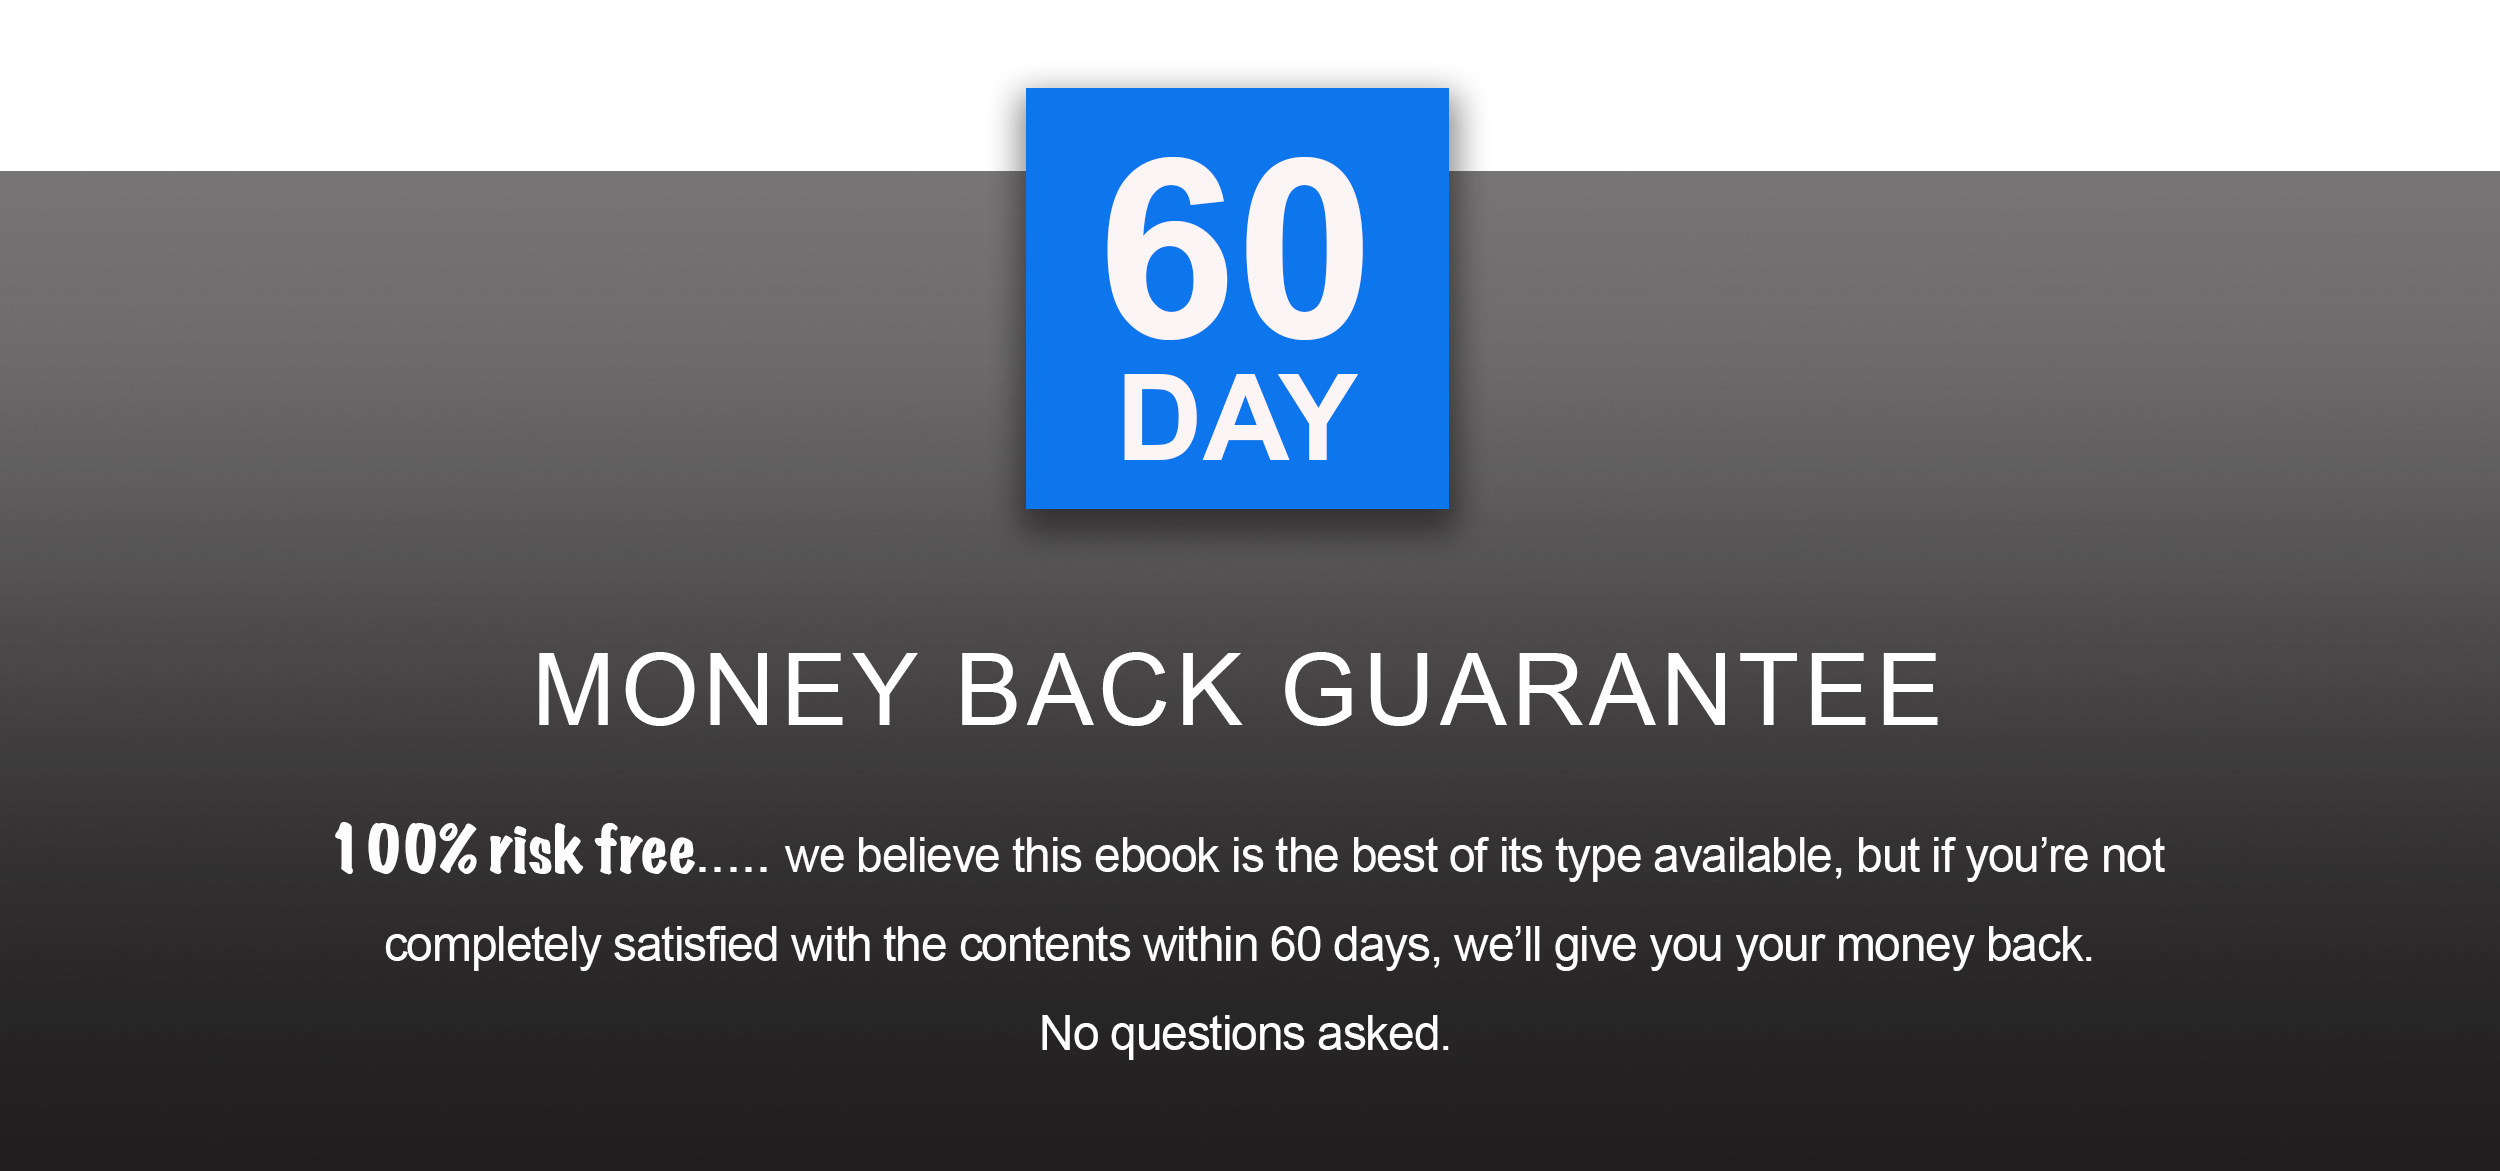 GUARANTEE 60 DAYS.jpg